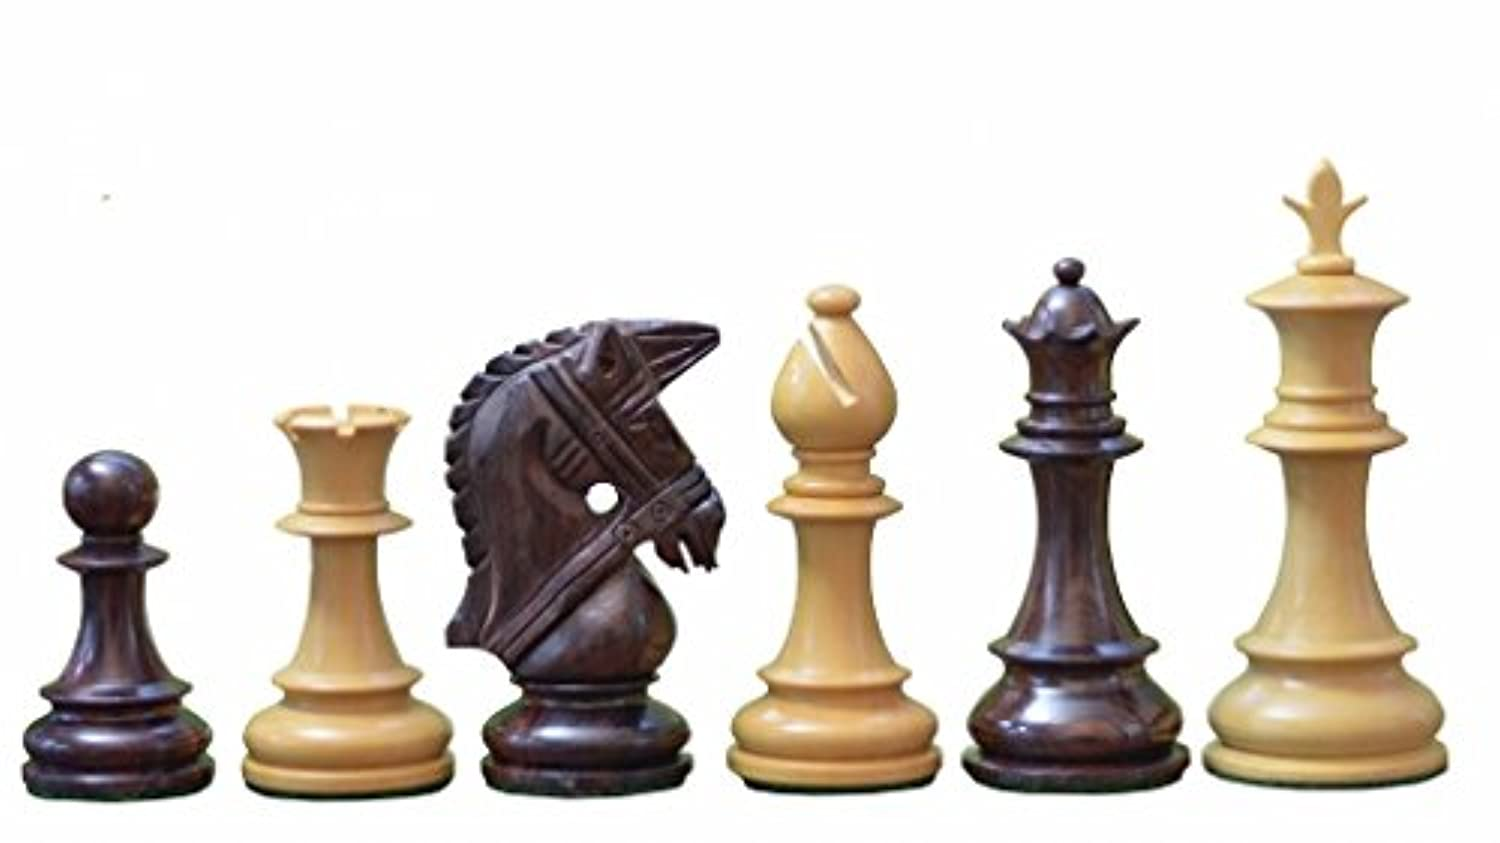 Chessbazaar The Bridle Series Wooden Chess Pieces In Rose & Box Wood